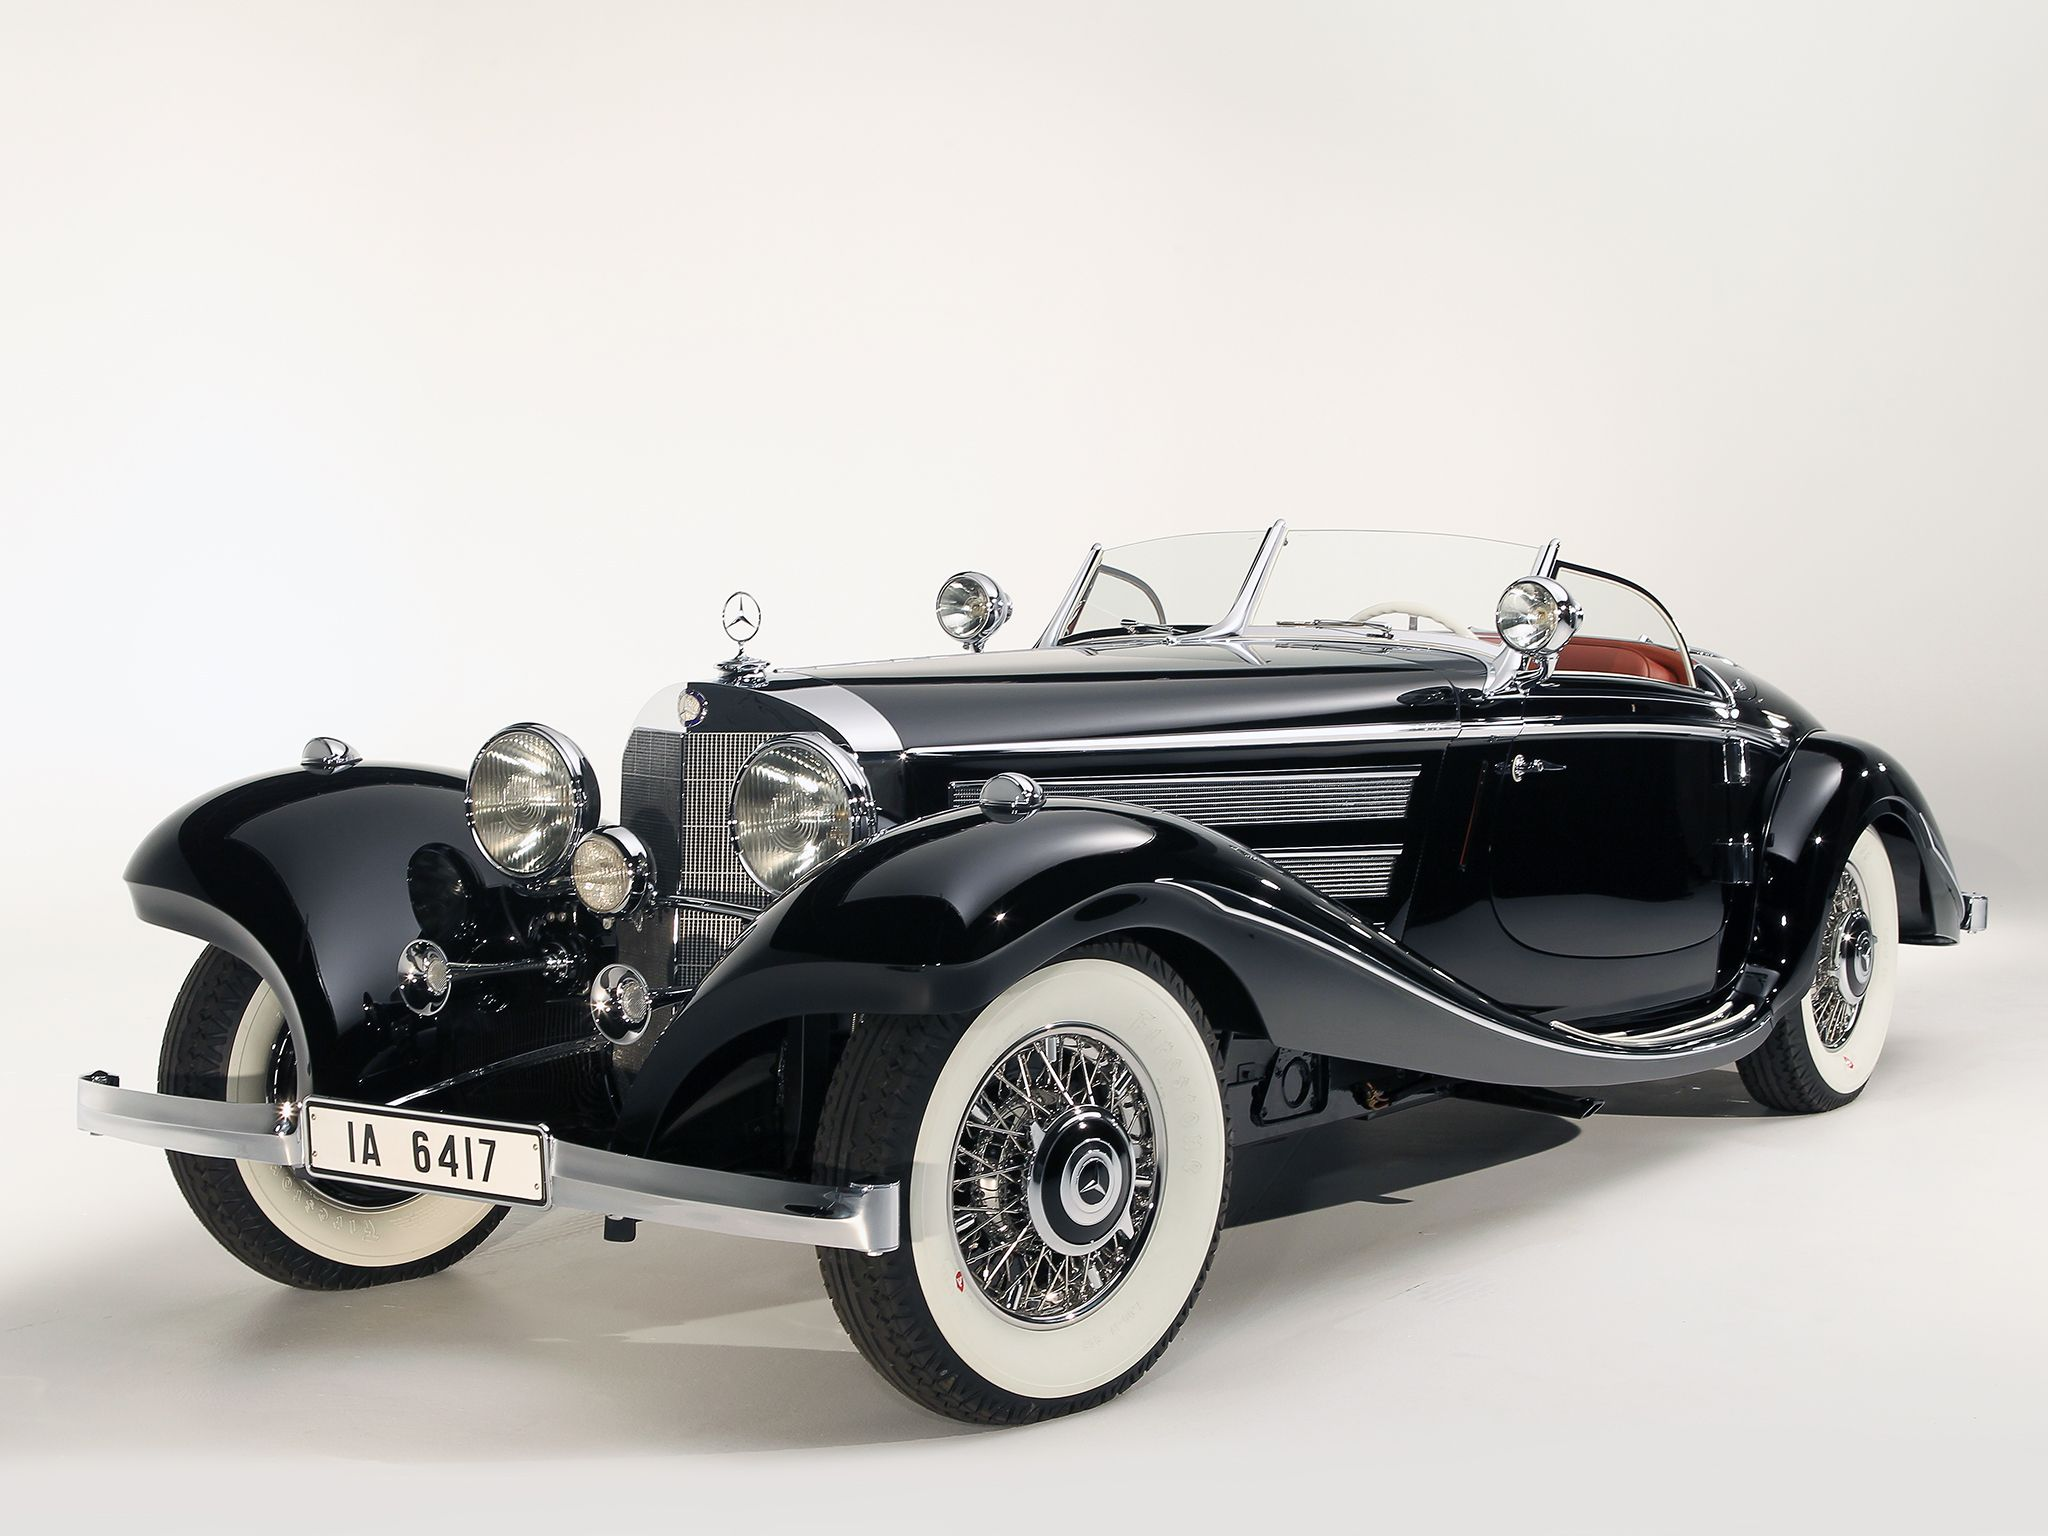 1936 mercedes benz 540k special roadster arguably the best looking mercedes of all